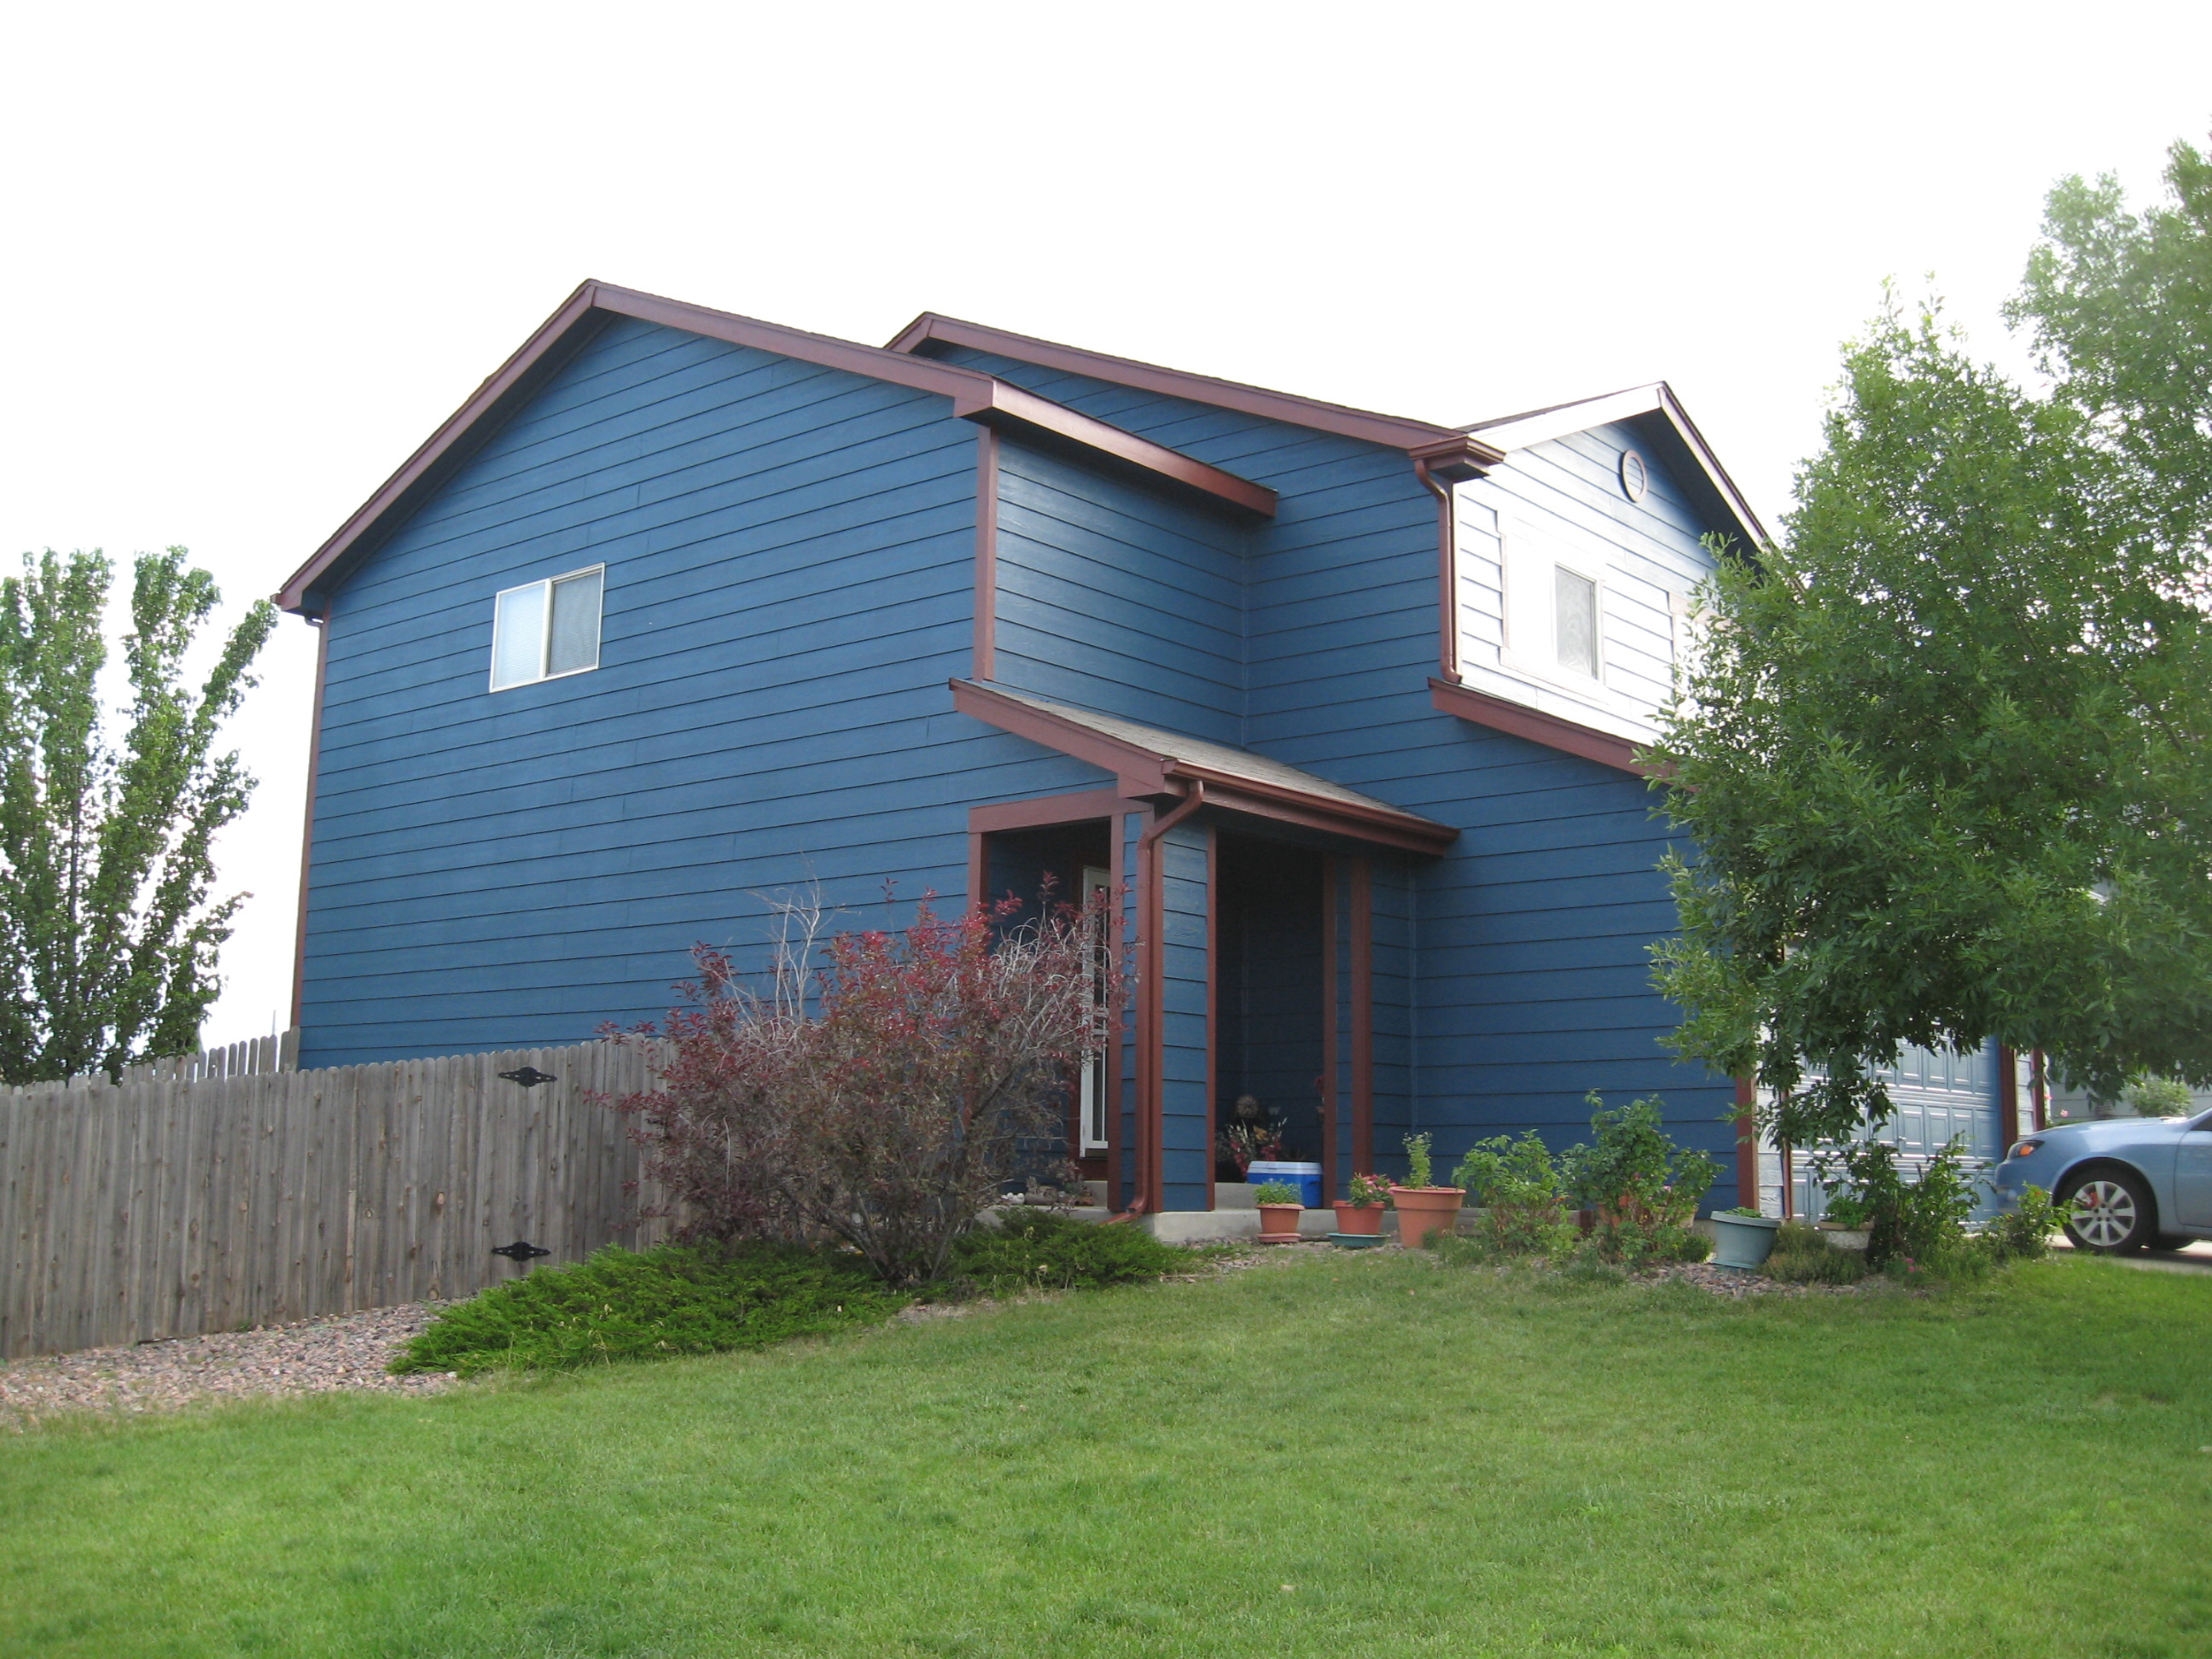 Aurora Exterior Painting Creative Property 7 Ways Increasing Home Values  Eco Paint Inc.